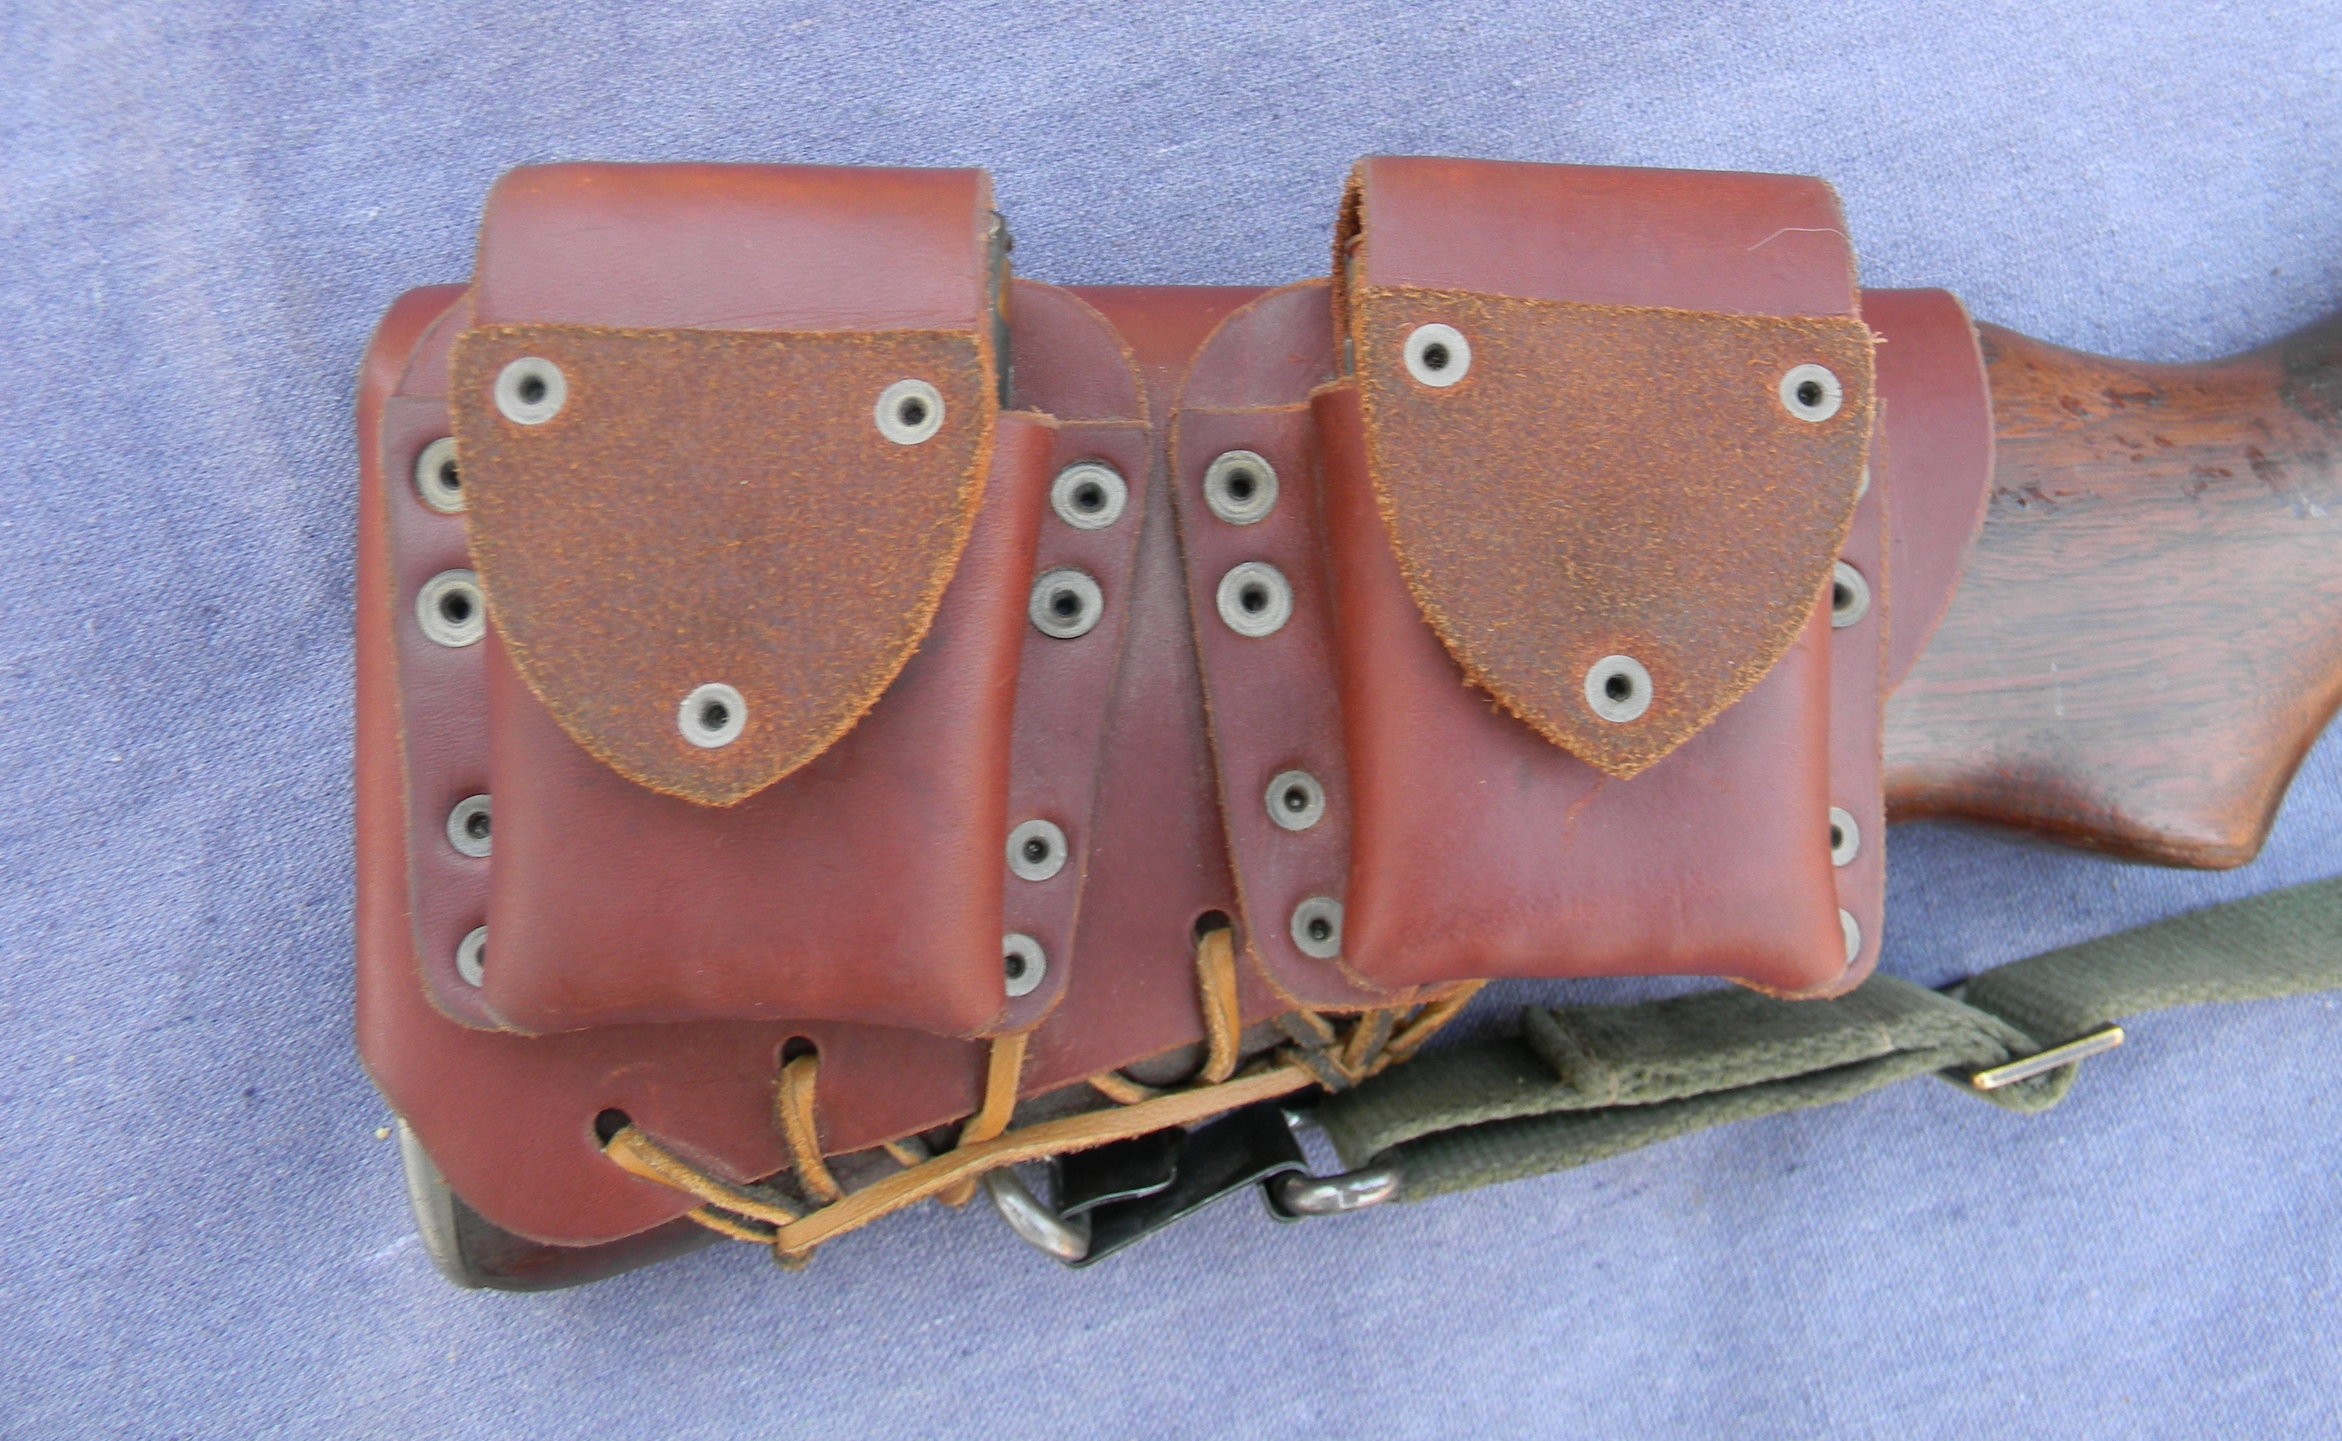 load bearing harness. - Carry two rations, for that surprise overnighter.A practiced rifleman will feel right at home behind a rifle carrying Stock Pocket. The pouches are balanced and easy to use. The full wrap leather harness keeps the low slung pouches stable on the rifle.